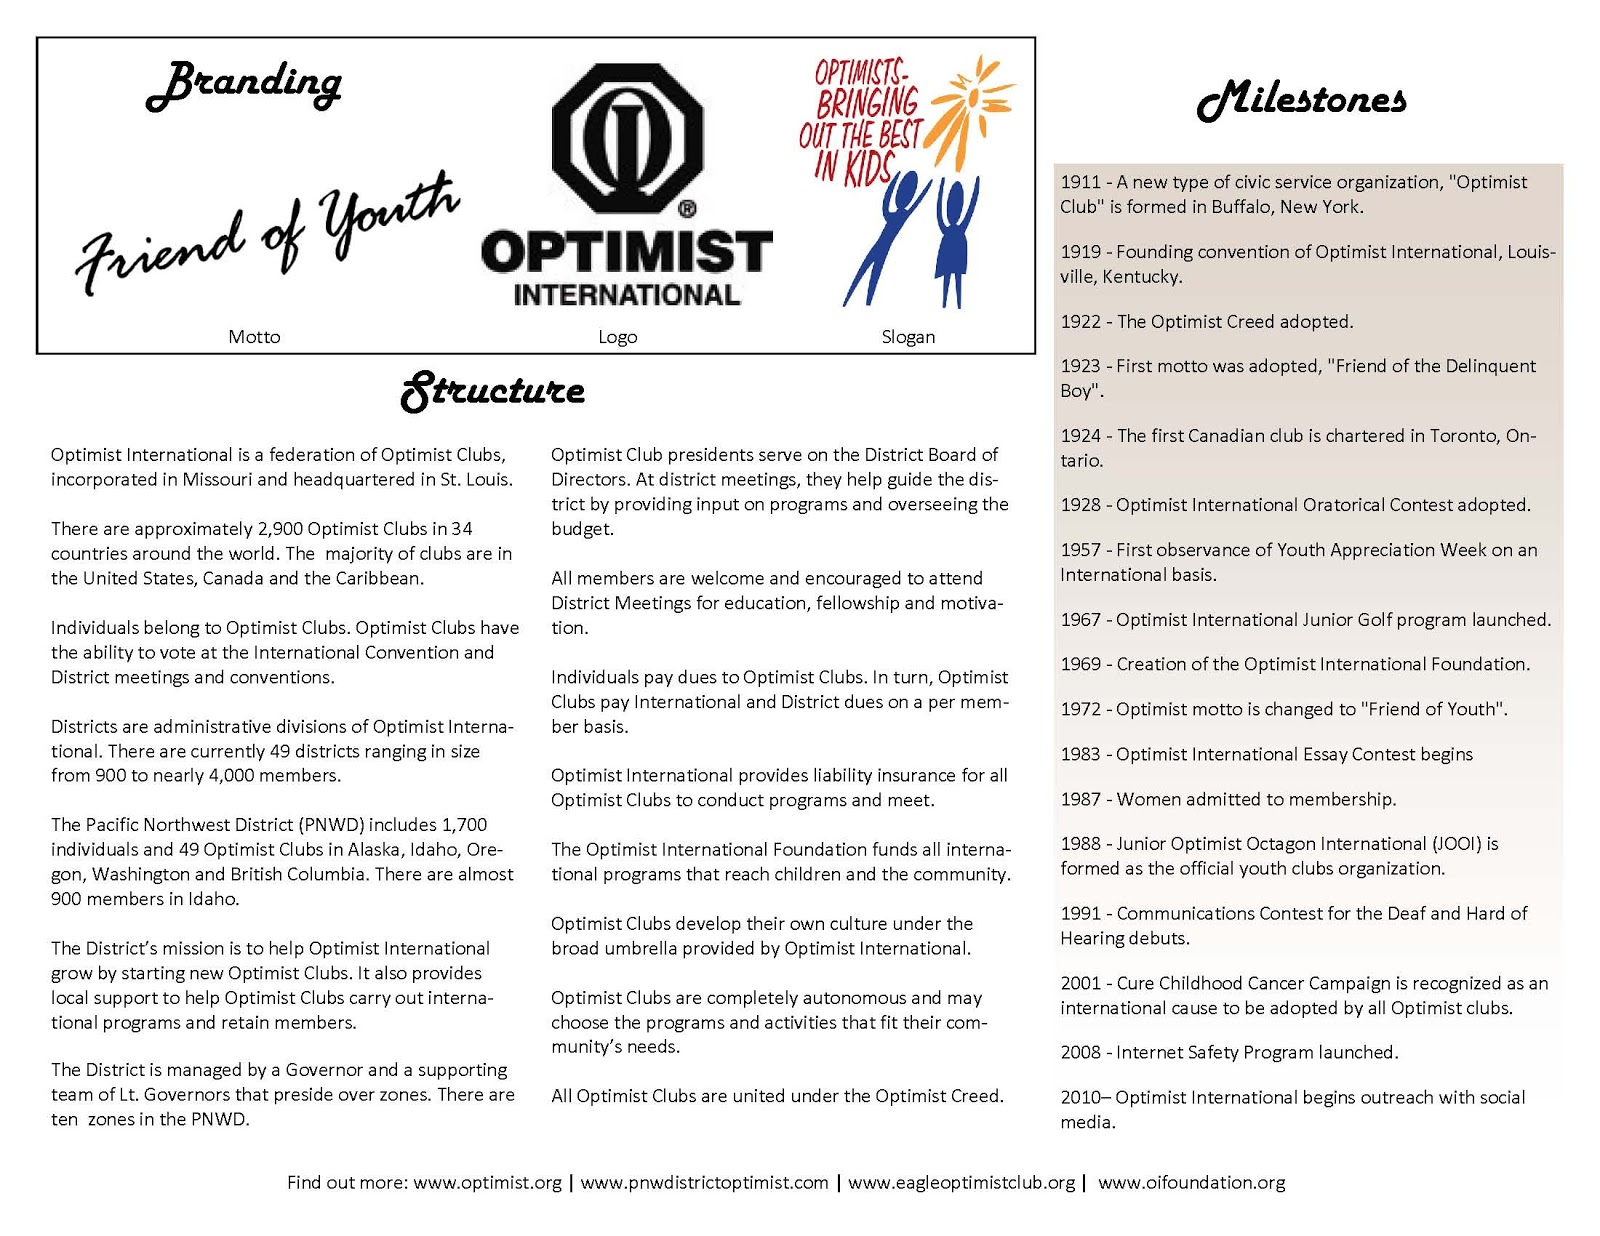 Optimist essay contest 2014